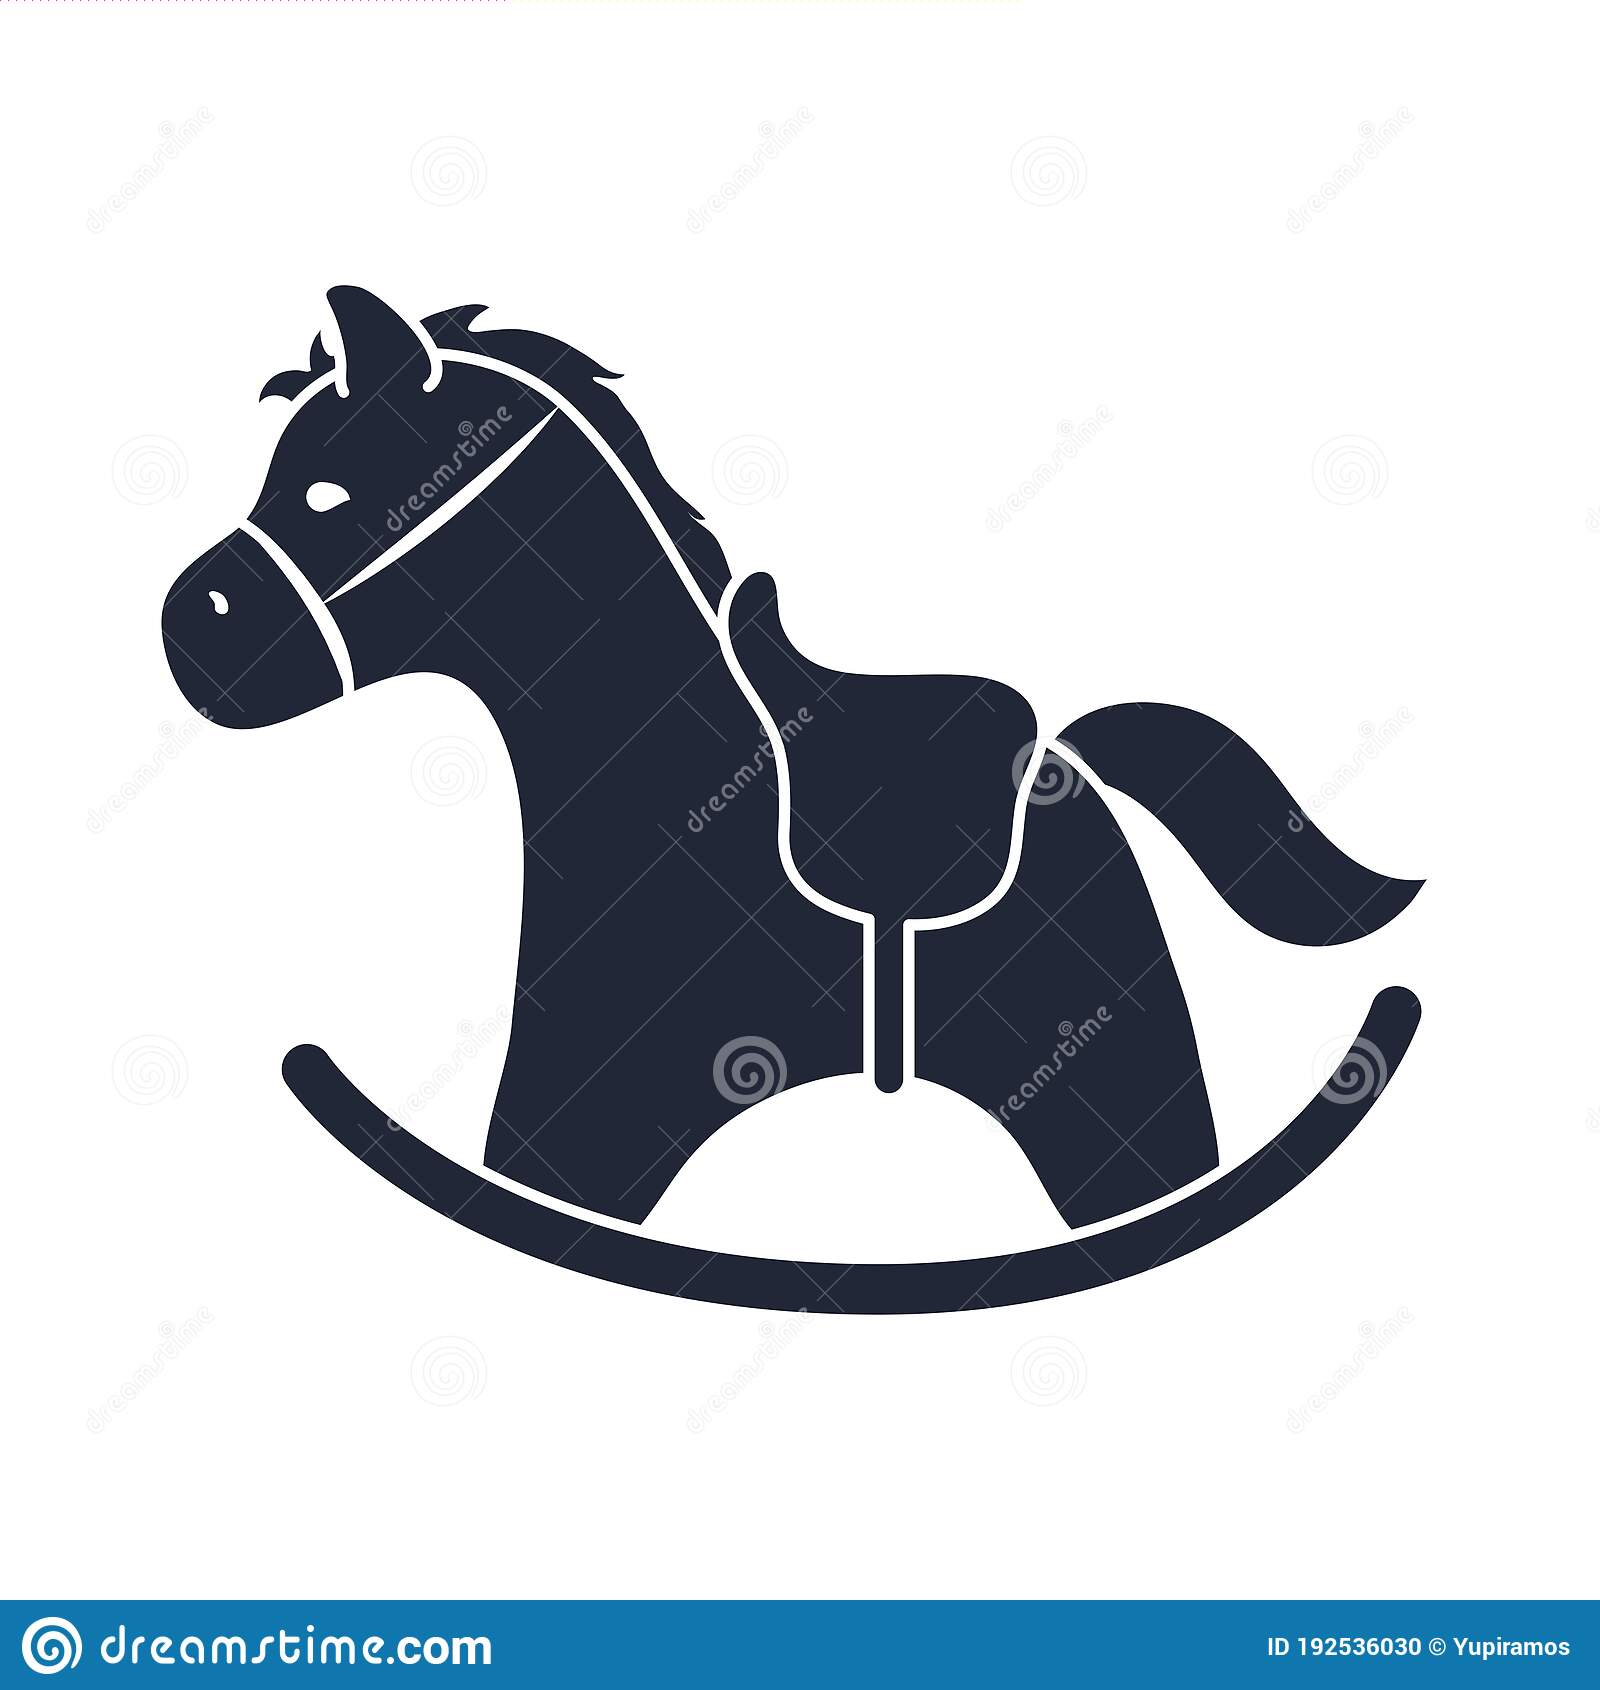 Cartoon Rocking Horse Toy Object For Small Children To Play Silhouette Style Icon Stock Vector Illustration Of Baby Isolated 192536030